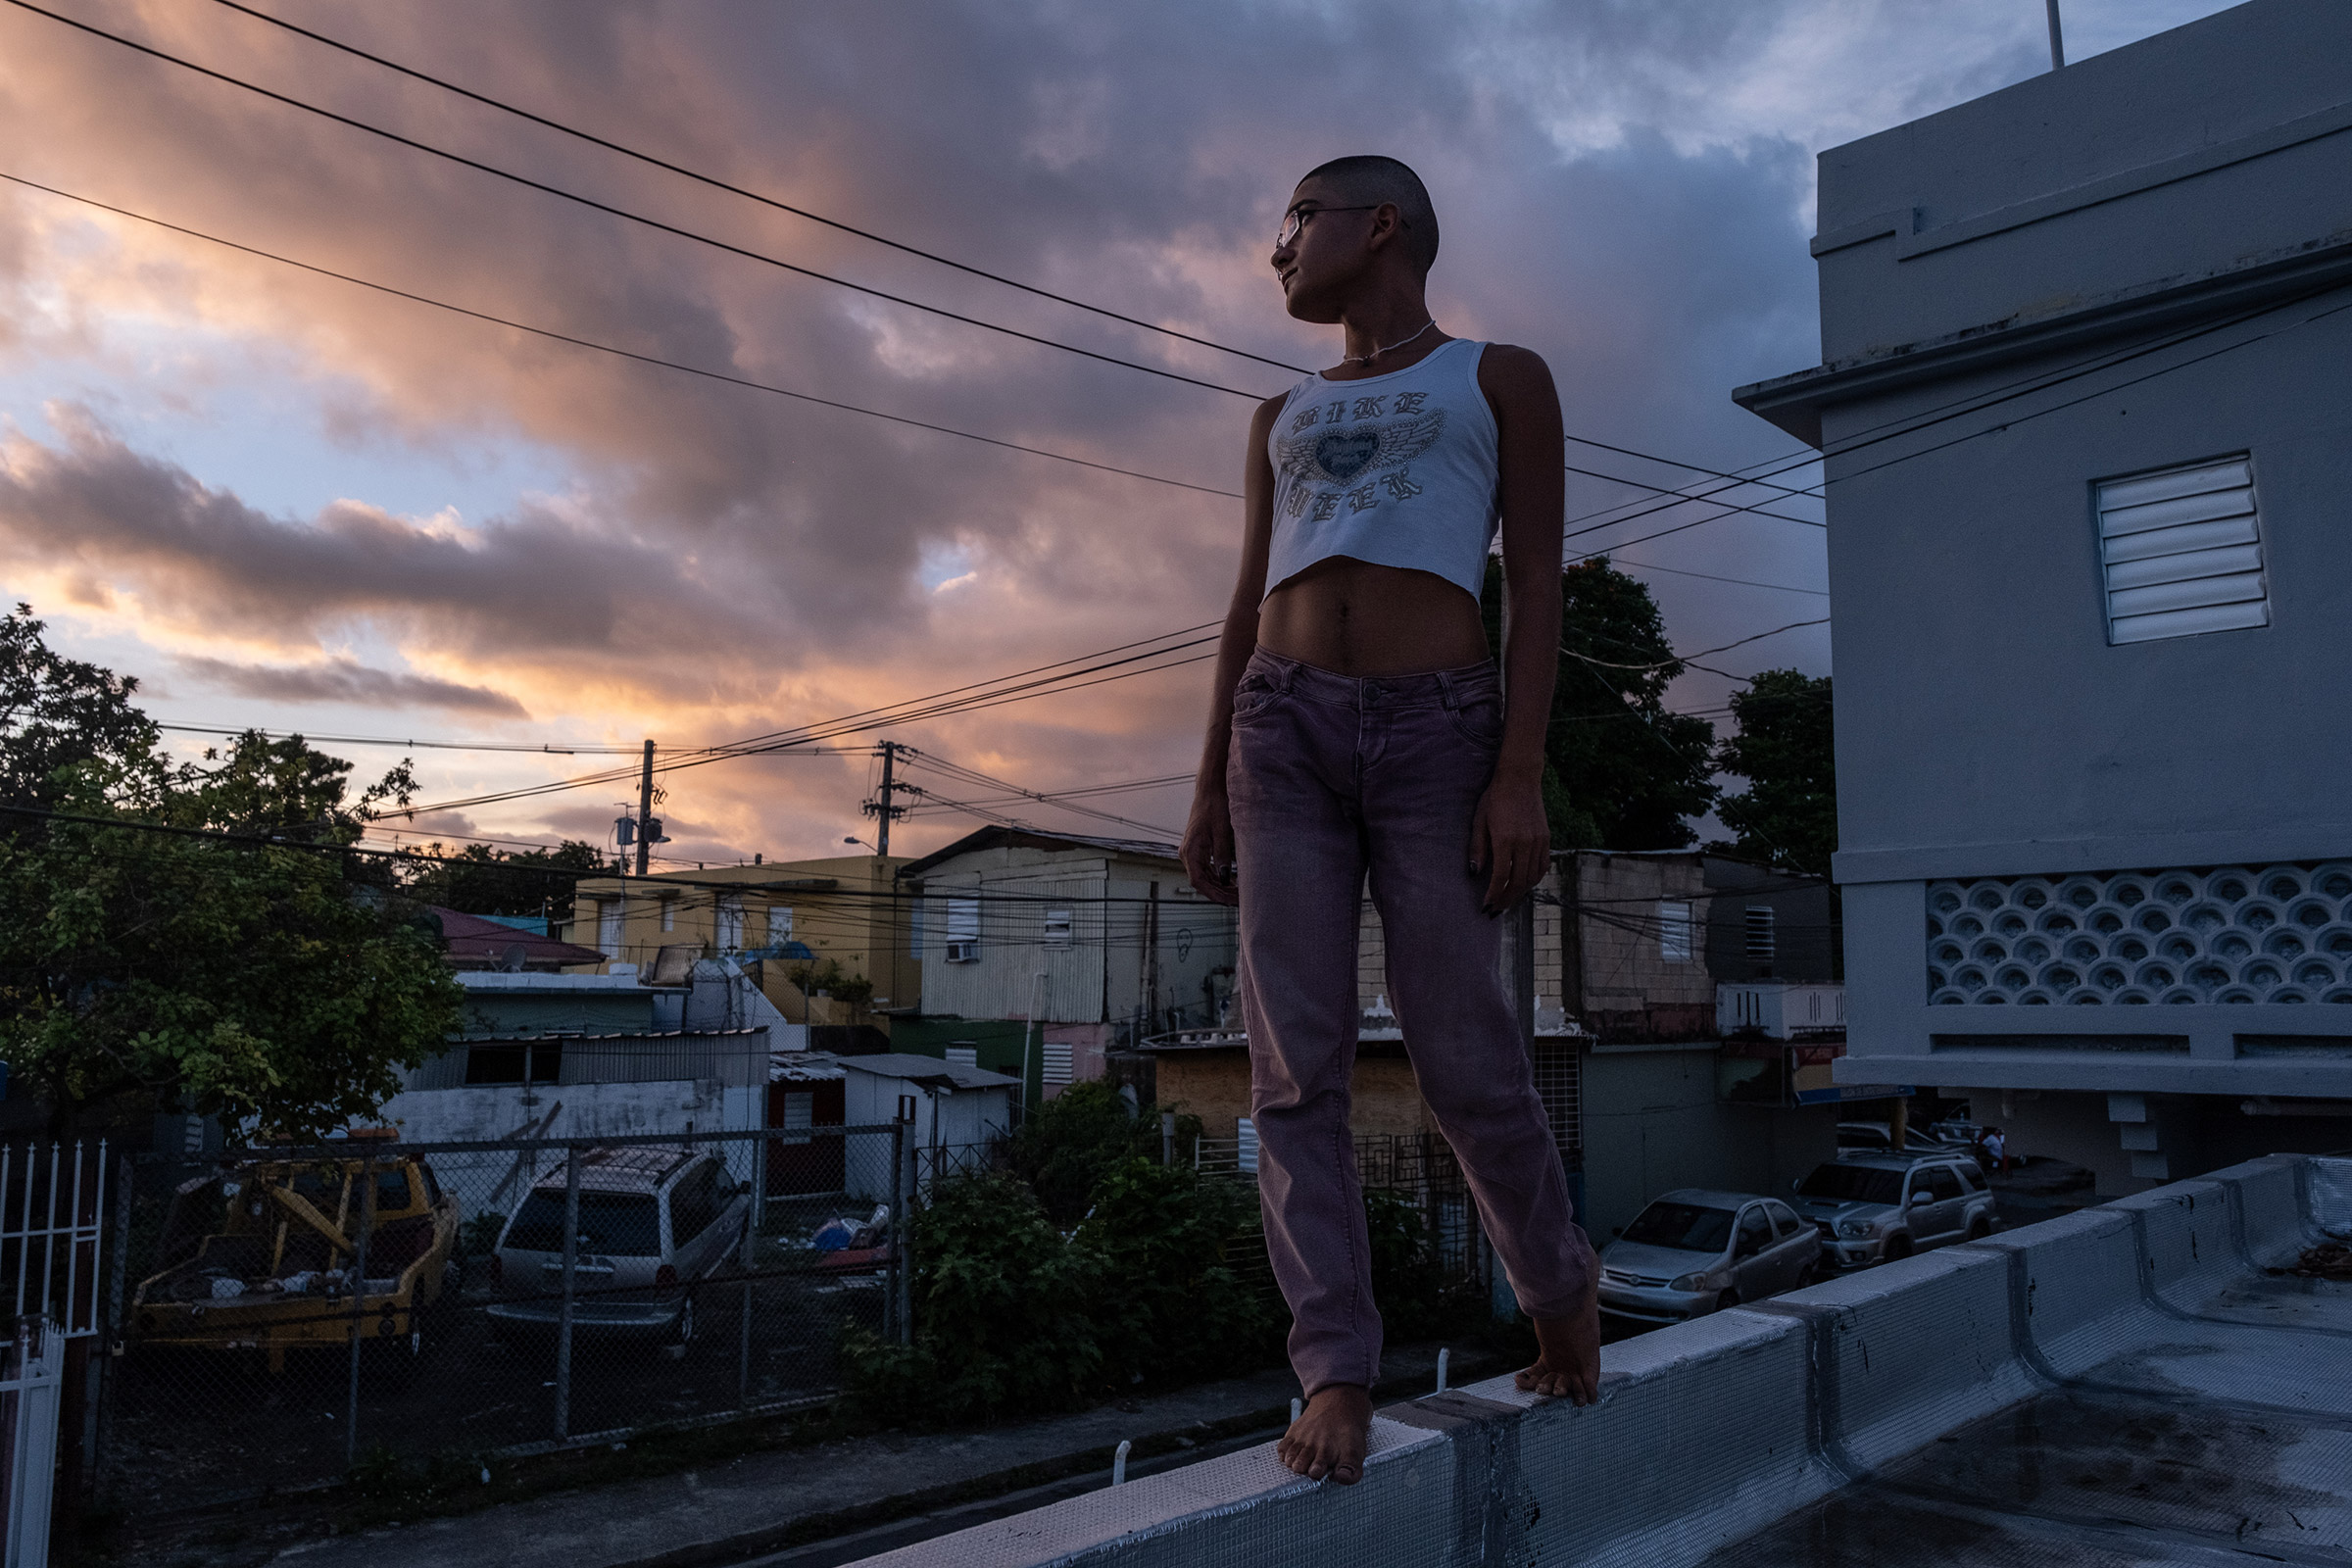 """Beibijavi, 22, poses for a portrait on the rooftop of their neighbors' apartment in Rio Piedras, San Juan, Puerto Rico. """"We deserve love, support, stability, and safety. We transcend our intersections,  Beibijavi tells TIME.  We are infinite."""""""